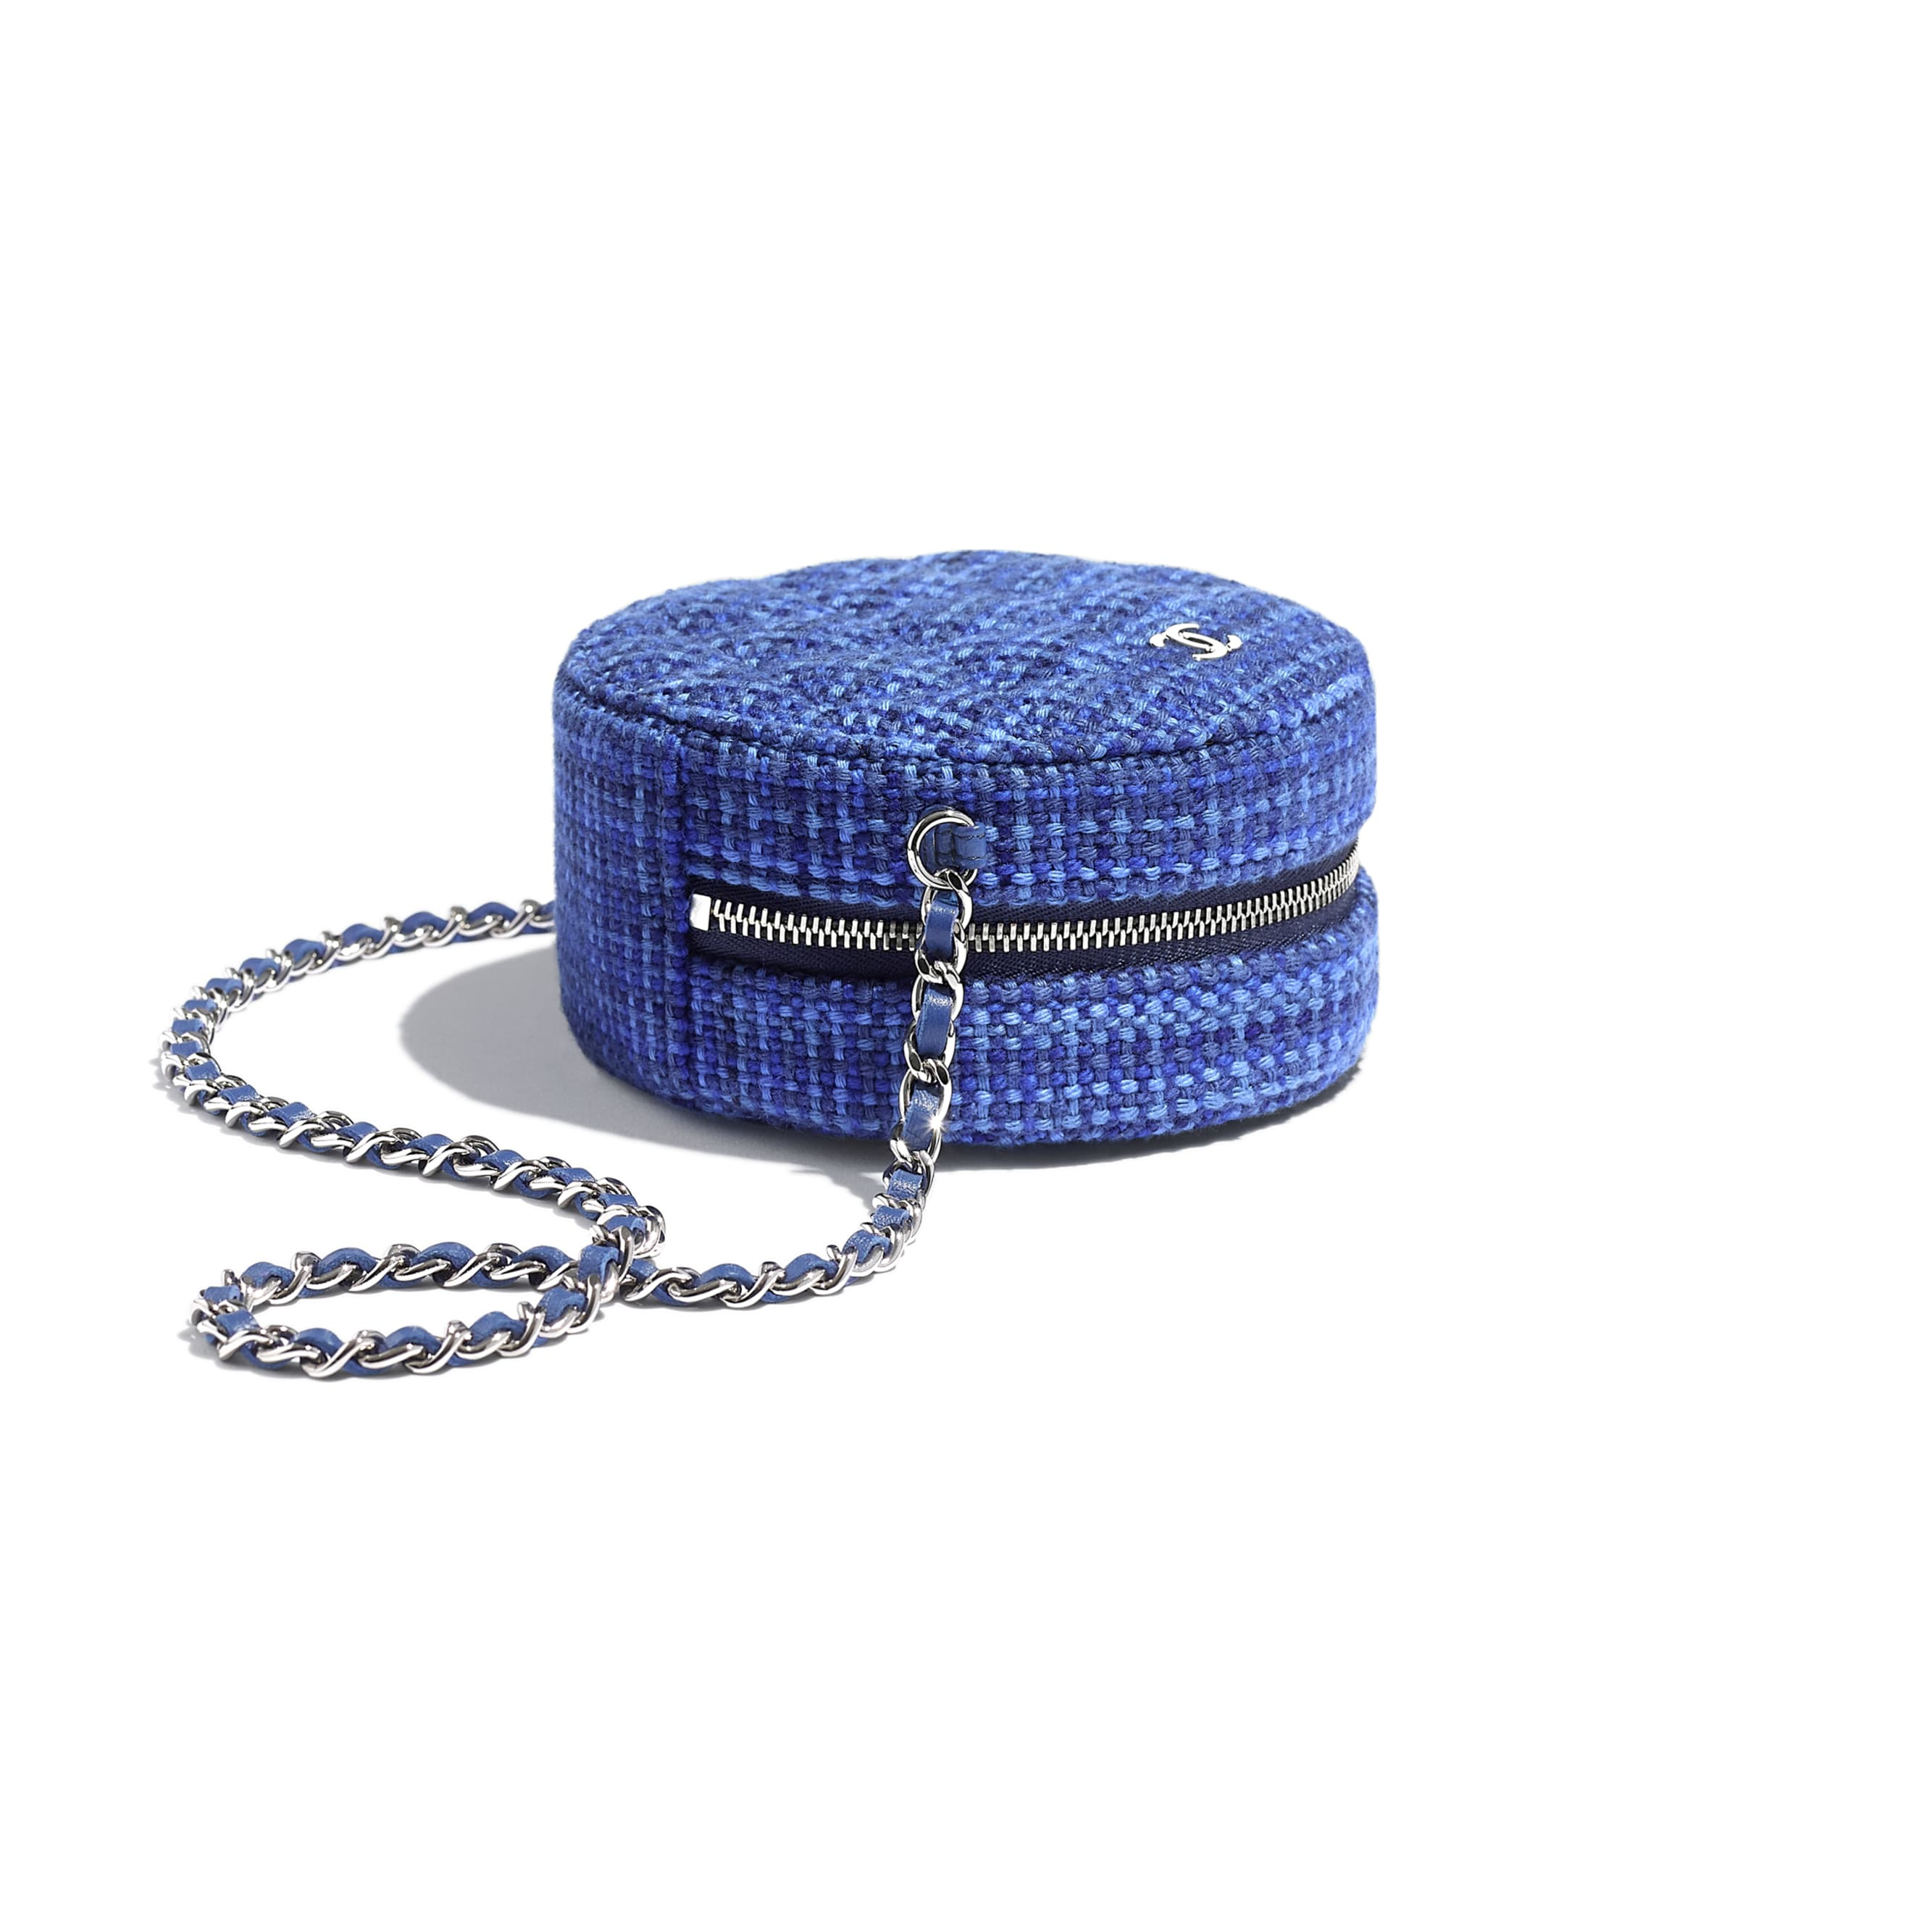 Classic Clutch with Chain - Navy Blue & Blue - Tweed & Silver-Tone Metal - CHANEL - Extra view - see standard sized version